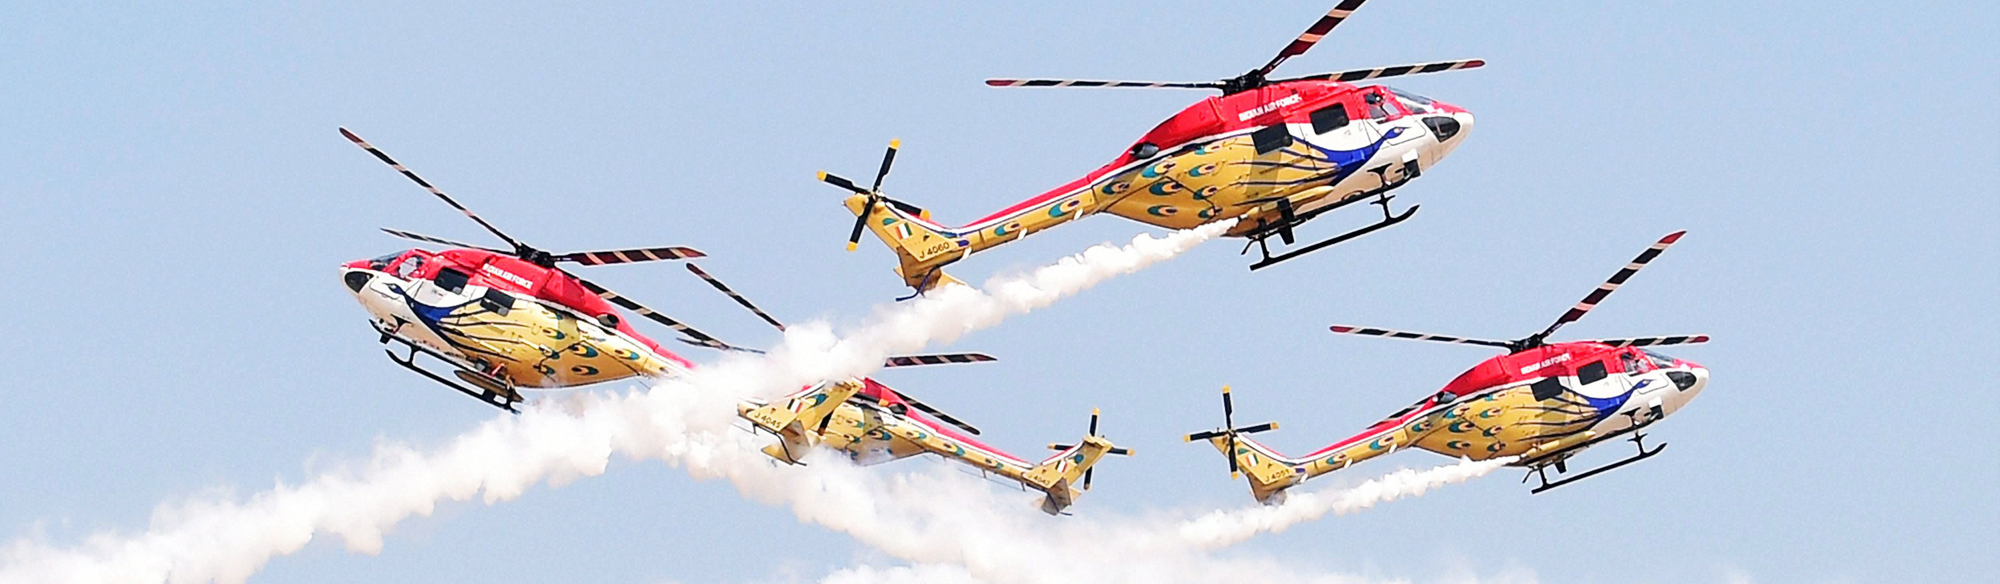 3 AERO INDIA 2019 SHOW DAILY SUPPLEMENTS - DATES: 20-2-19, 21-2-19, 22-2-19 & 2 MONTHLY SPECIAL ISSUES